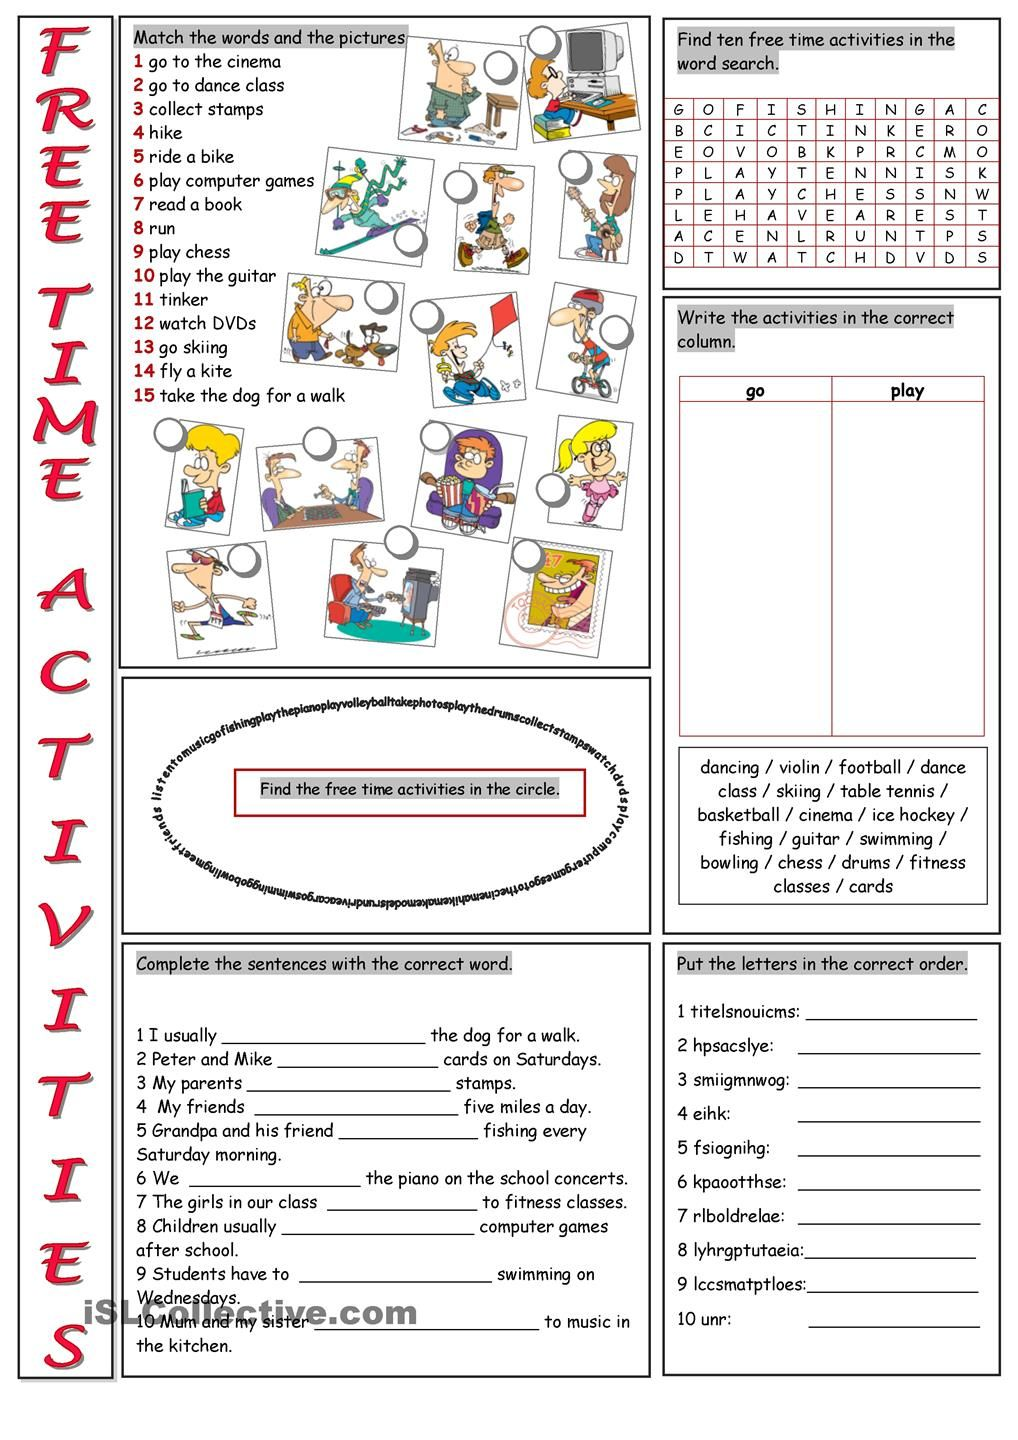 Worksheets Free Student Worksheets free time activities vocabulary exercises hobbies and exercises